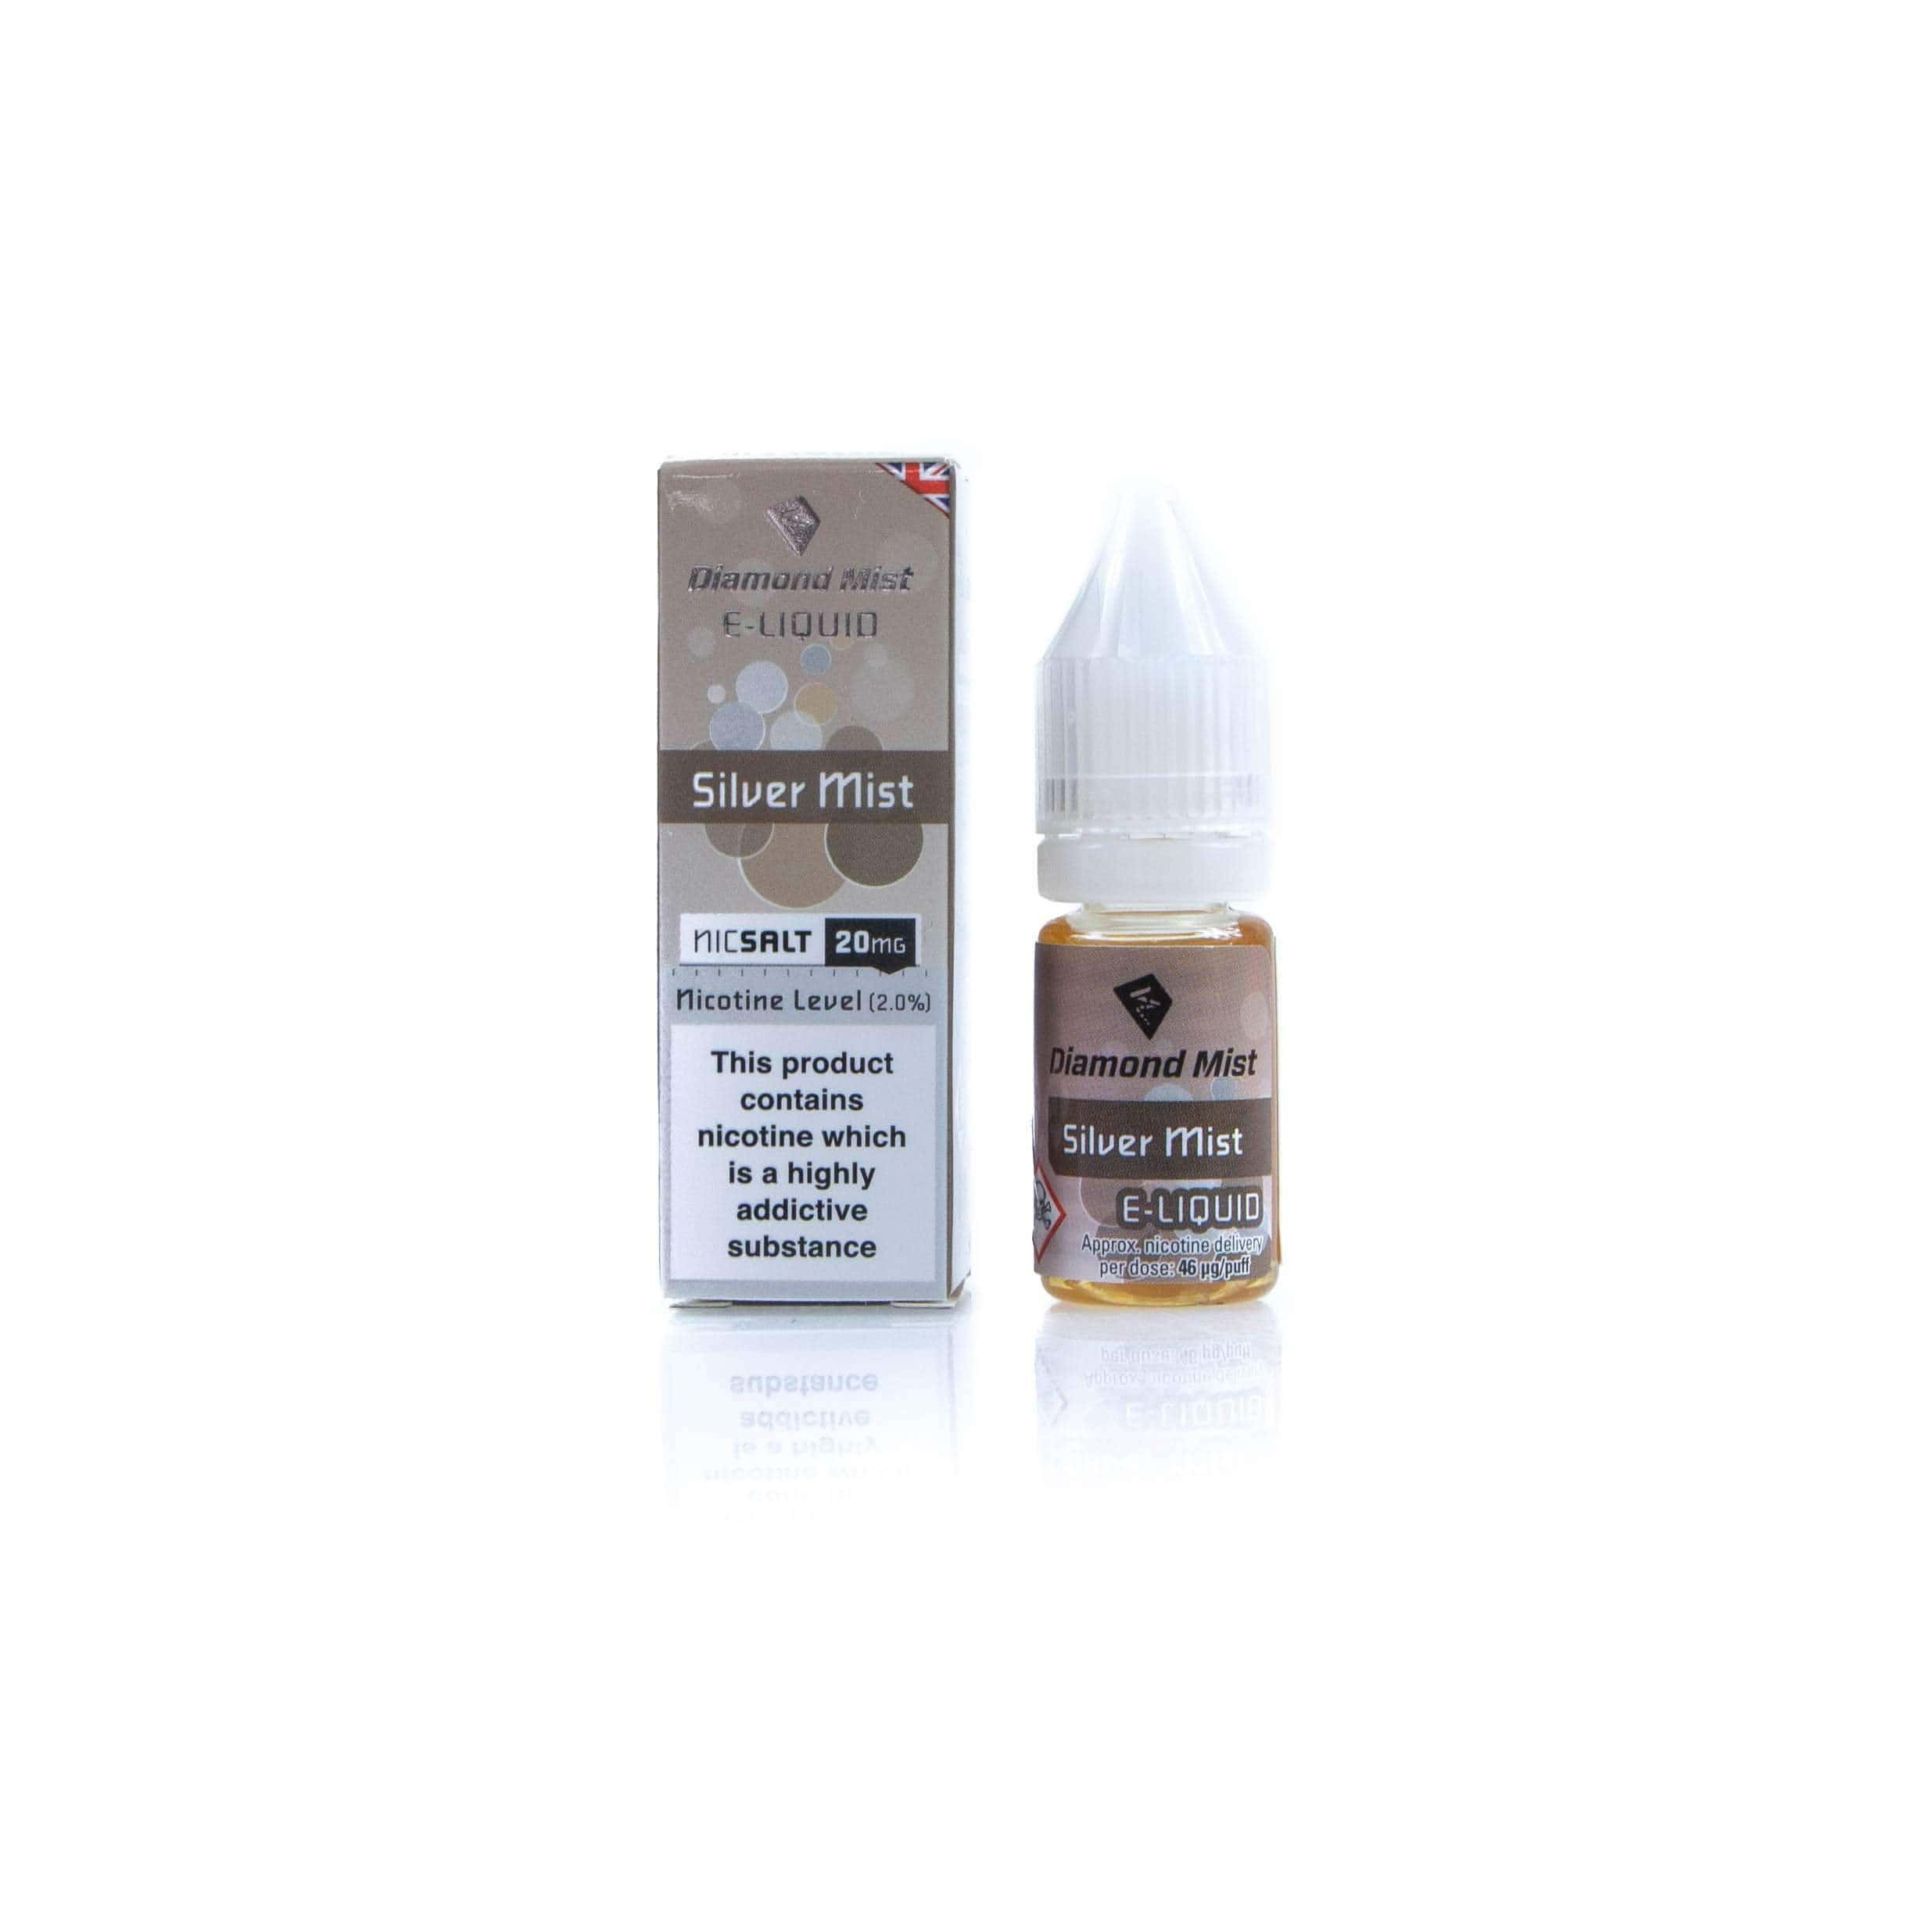 Diamond Mist E-Liquid East Silver Mist Nic Salt grey-haze.myshopify.com